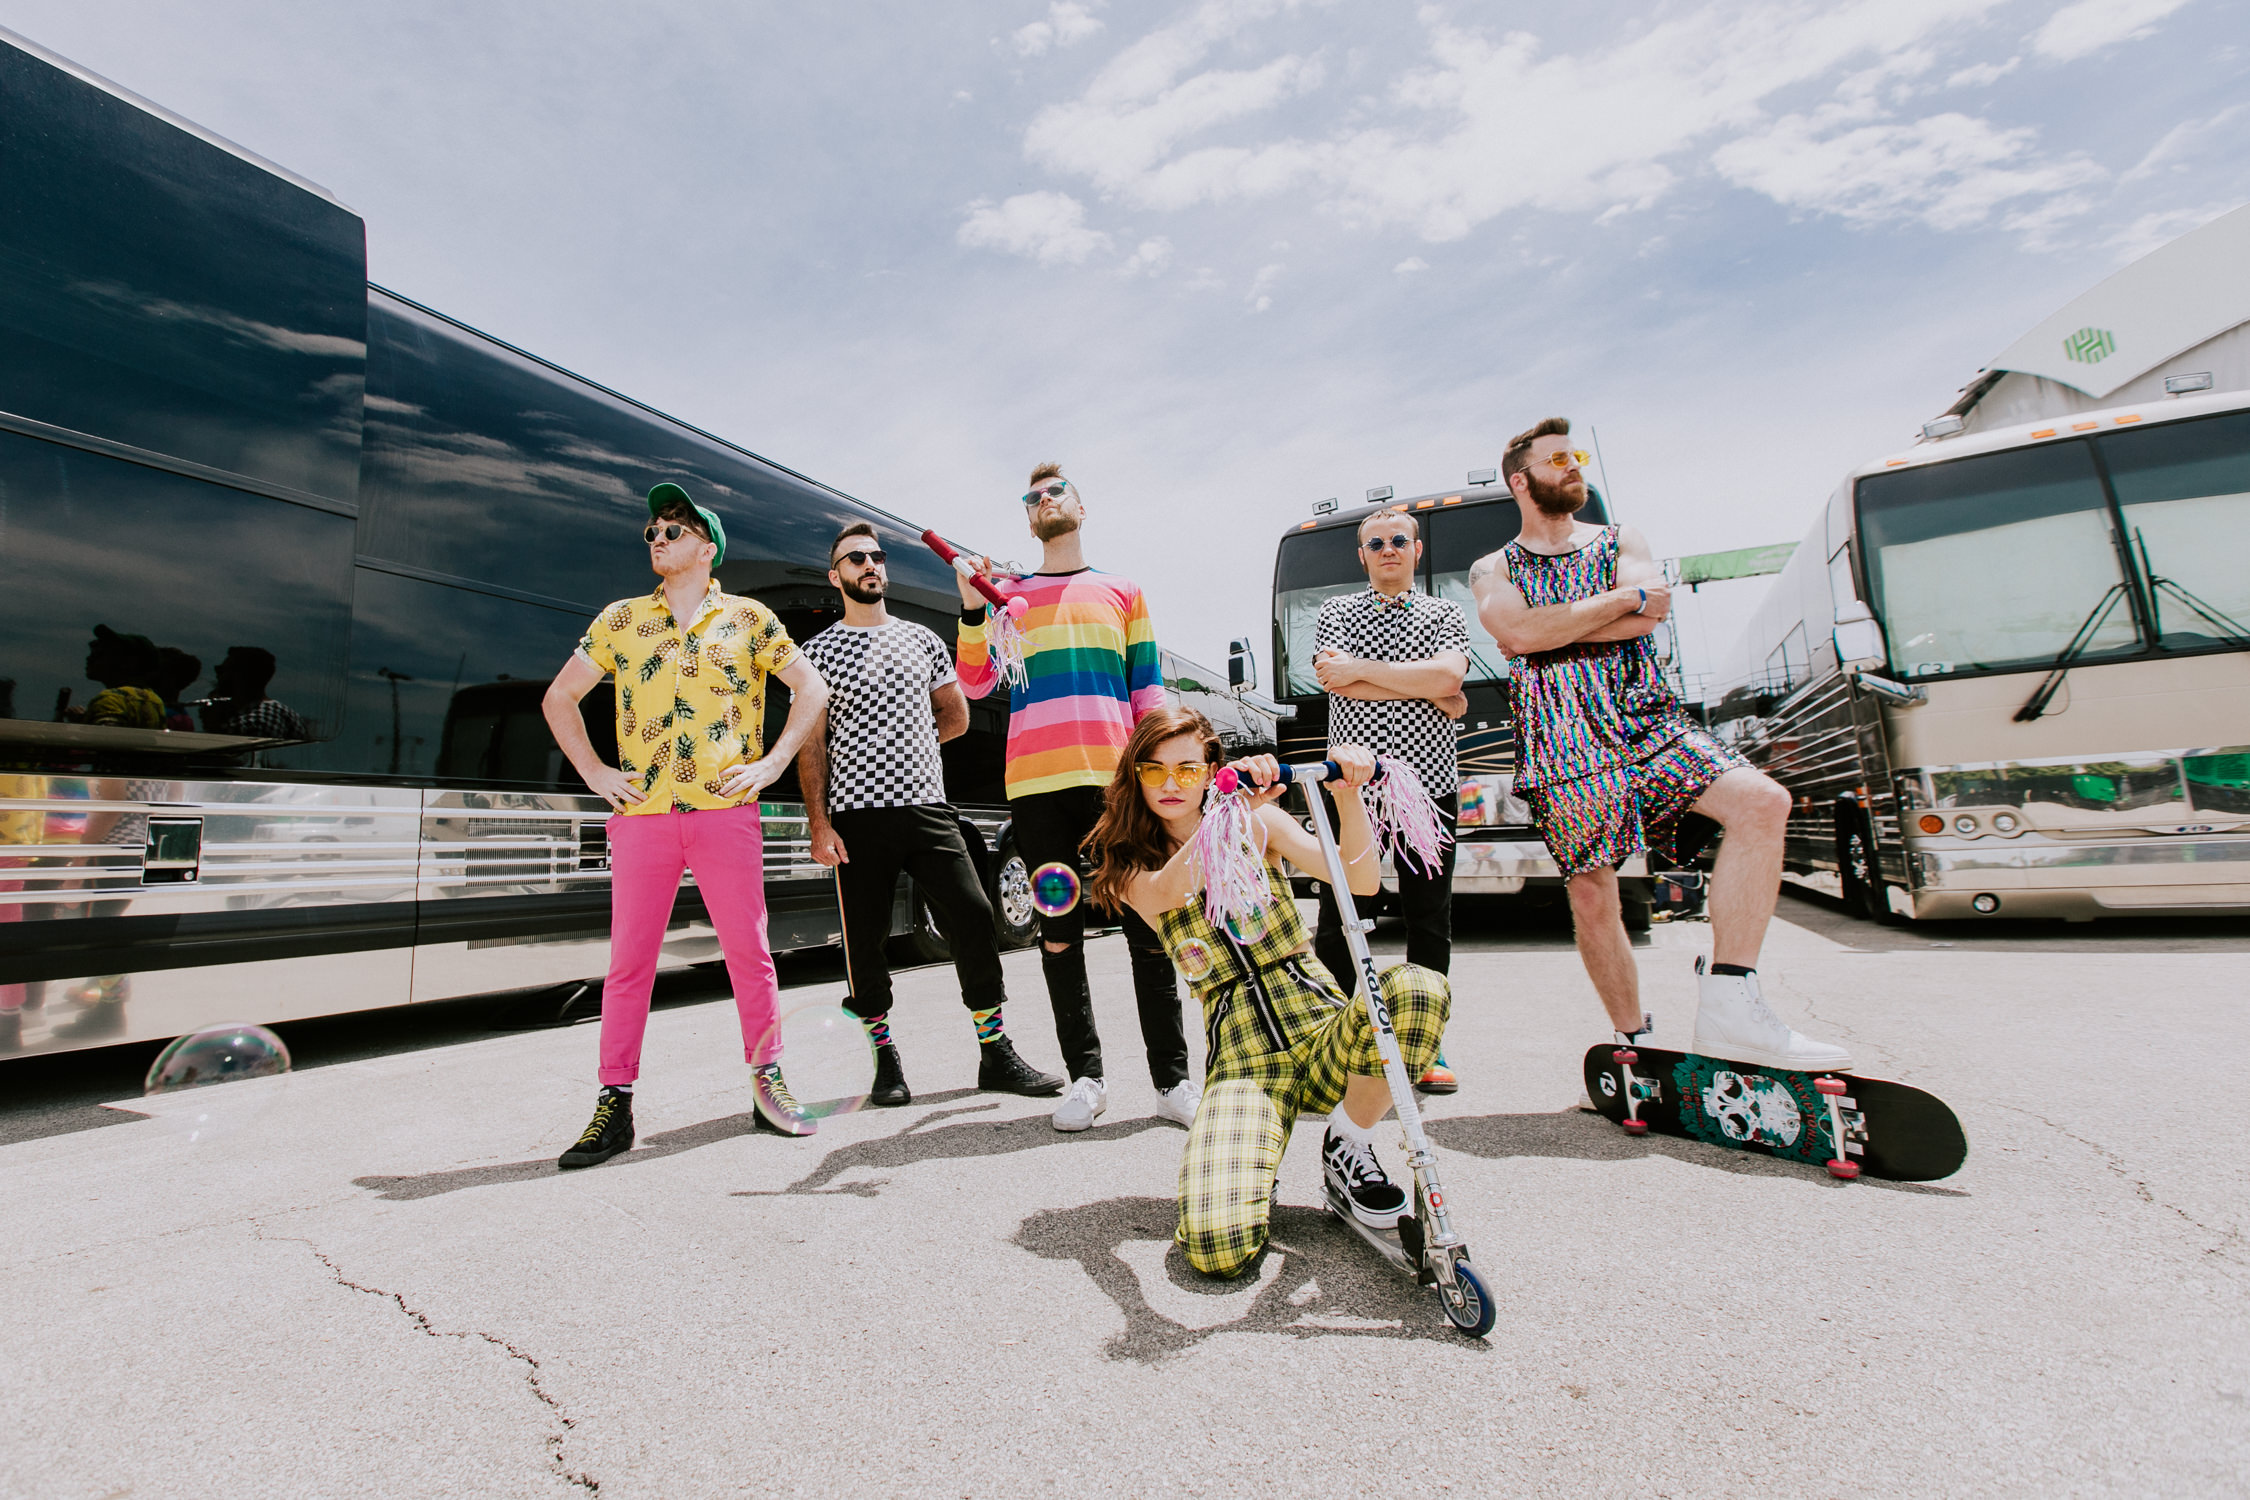 misterwives-scooter-tour-buses-promo-struts-